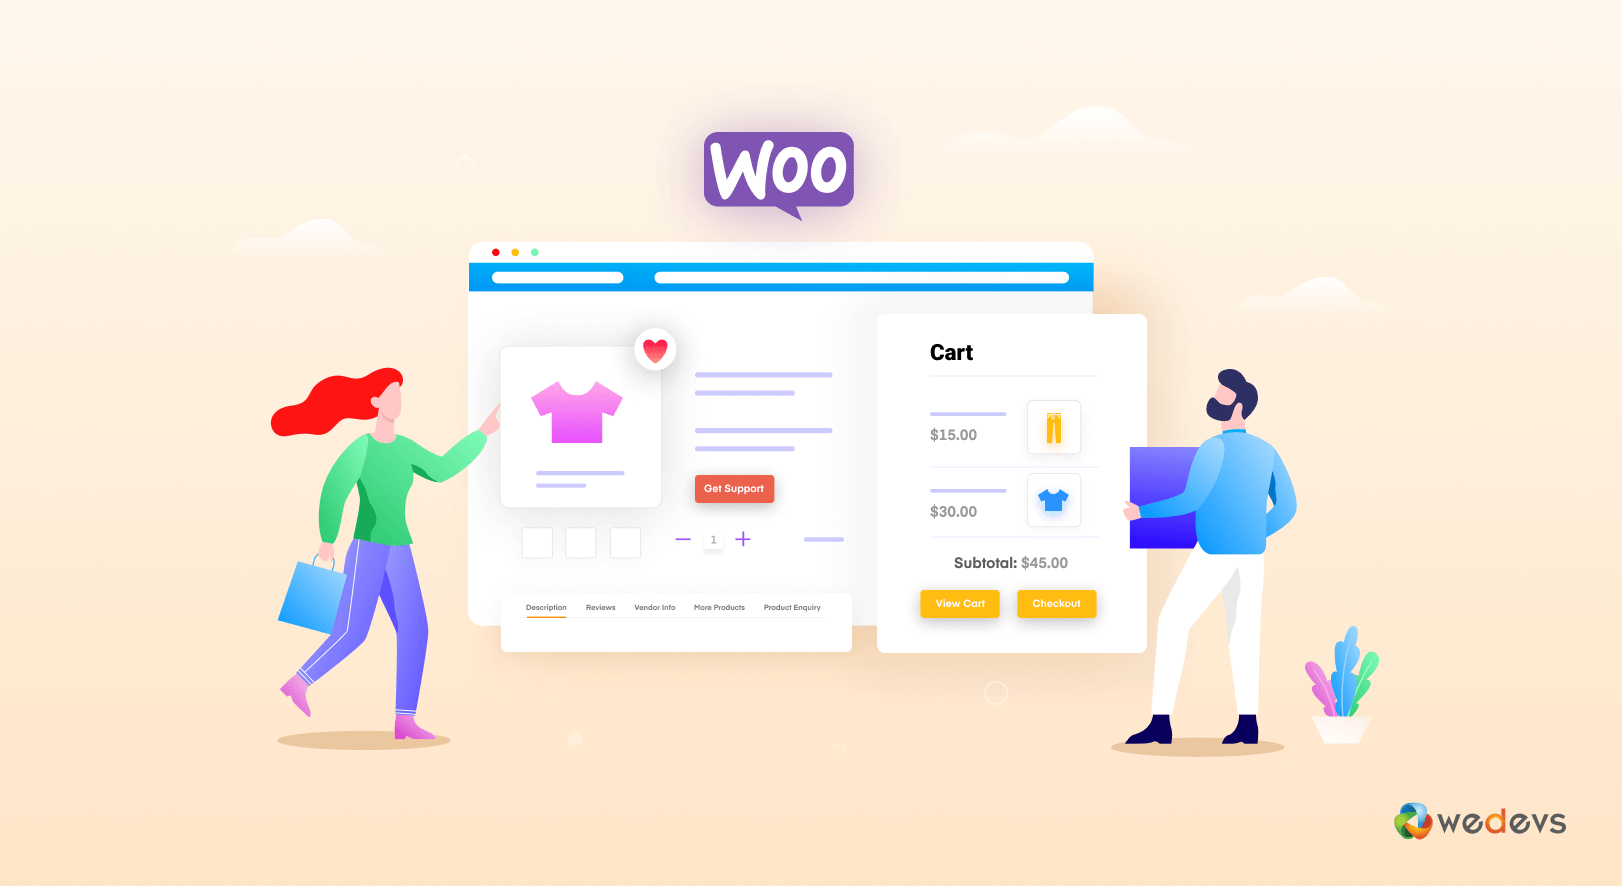 How to Customize WooCommerce Product Page (3 Simple Ways)